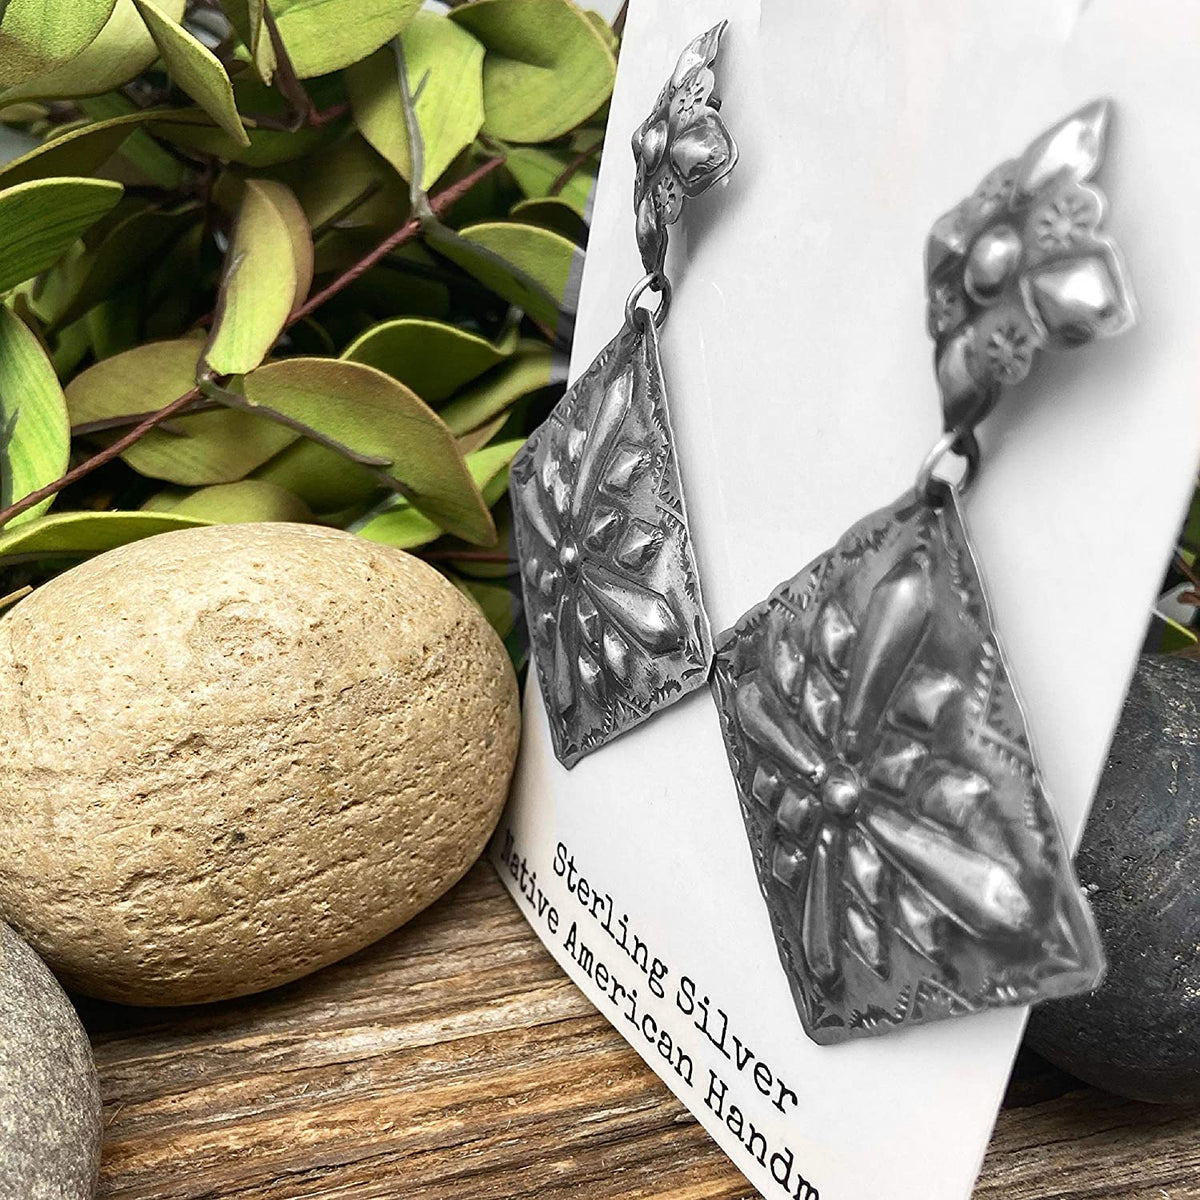 Genuine Oxidized Sterling Silver Statement Earrings, Authentic Navajo Native American USA Handmade, Nickle Free, Southwest Vintage Style